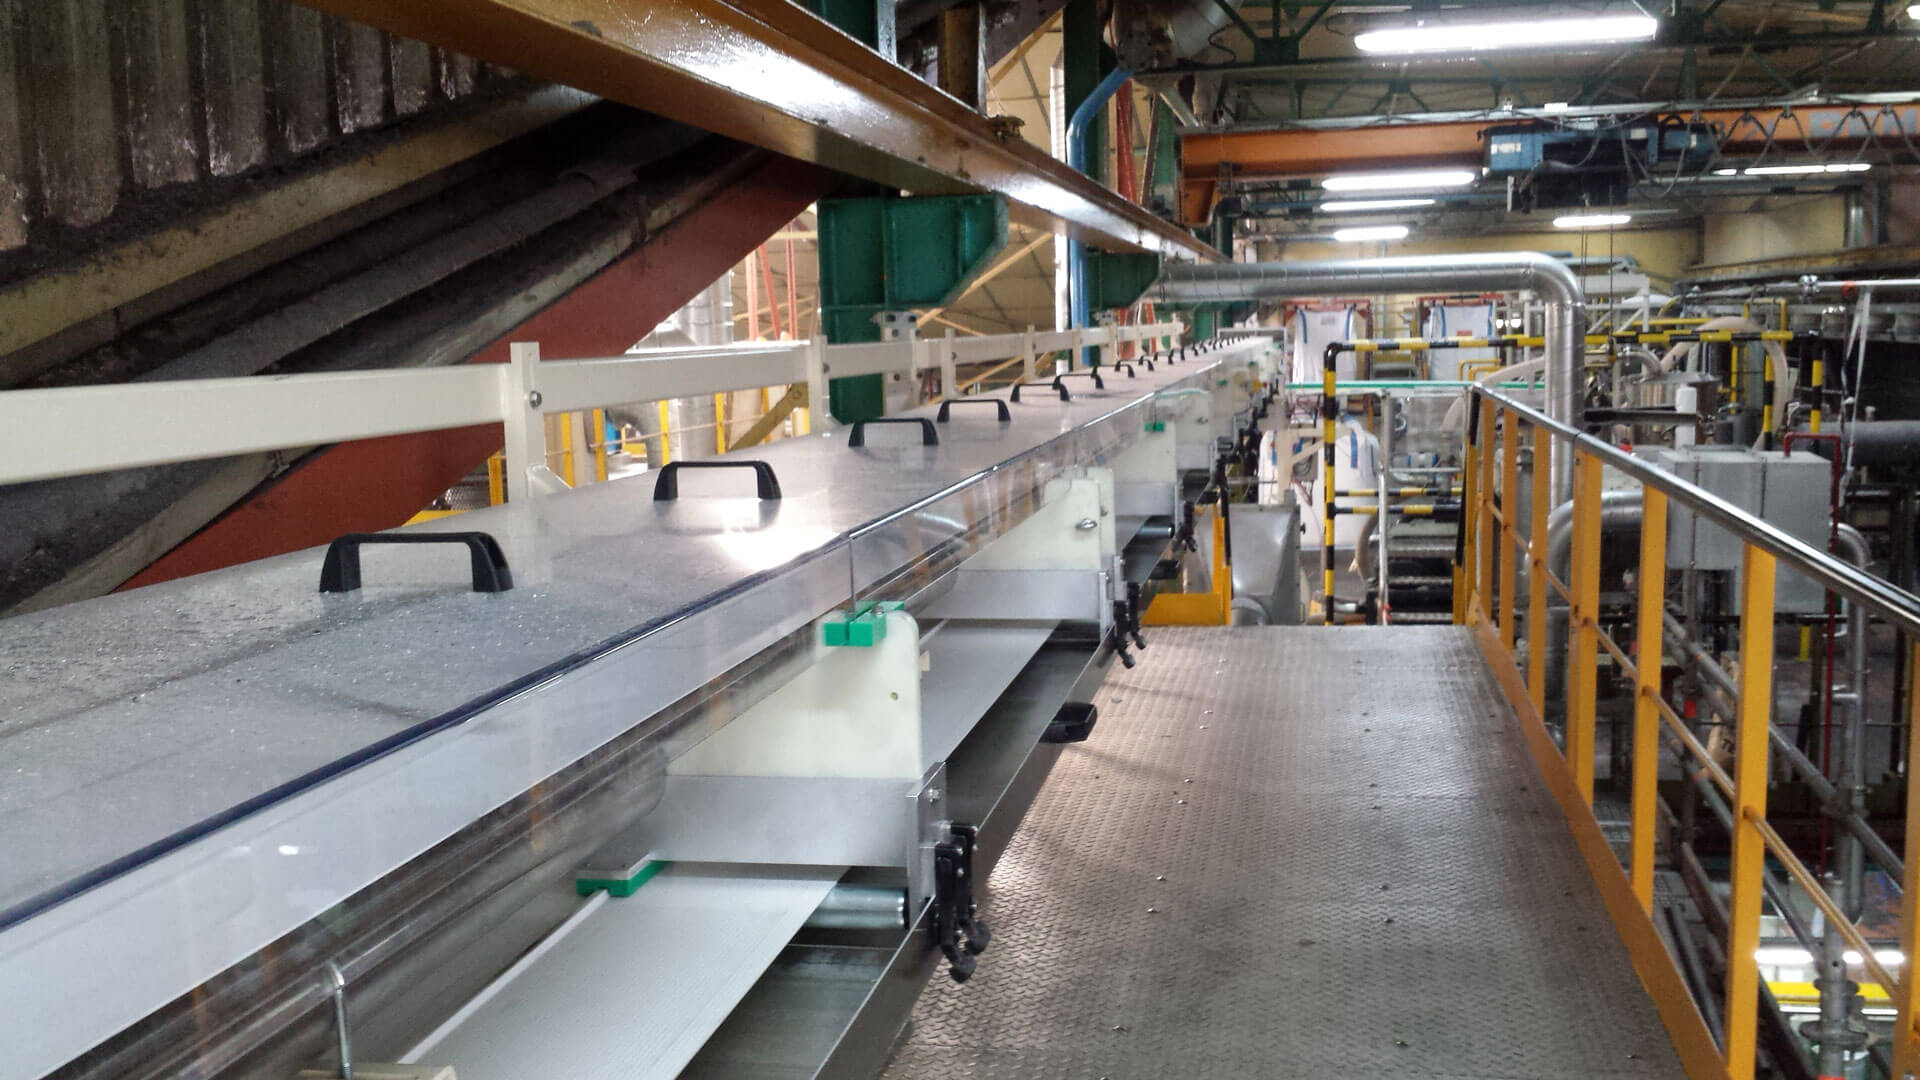 Fiberglass-belt conveyors